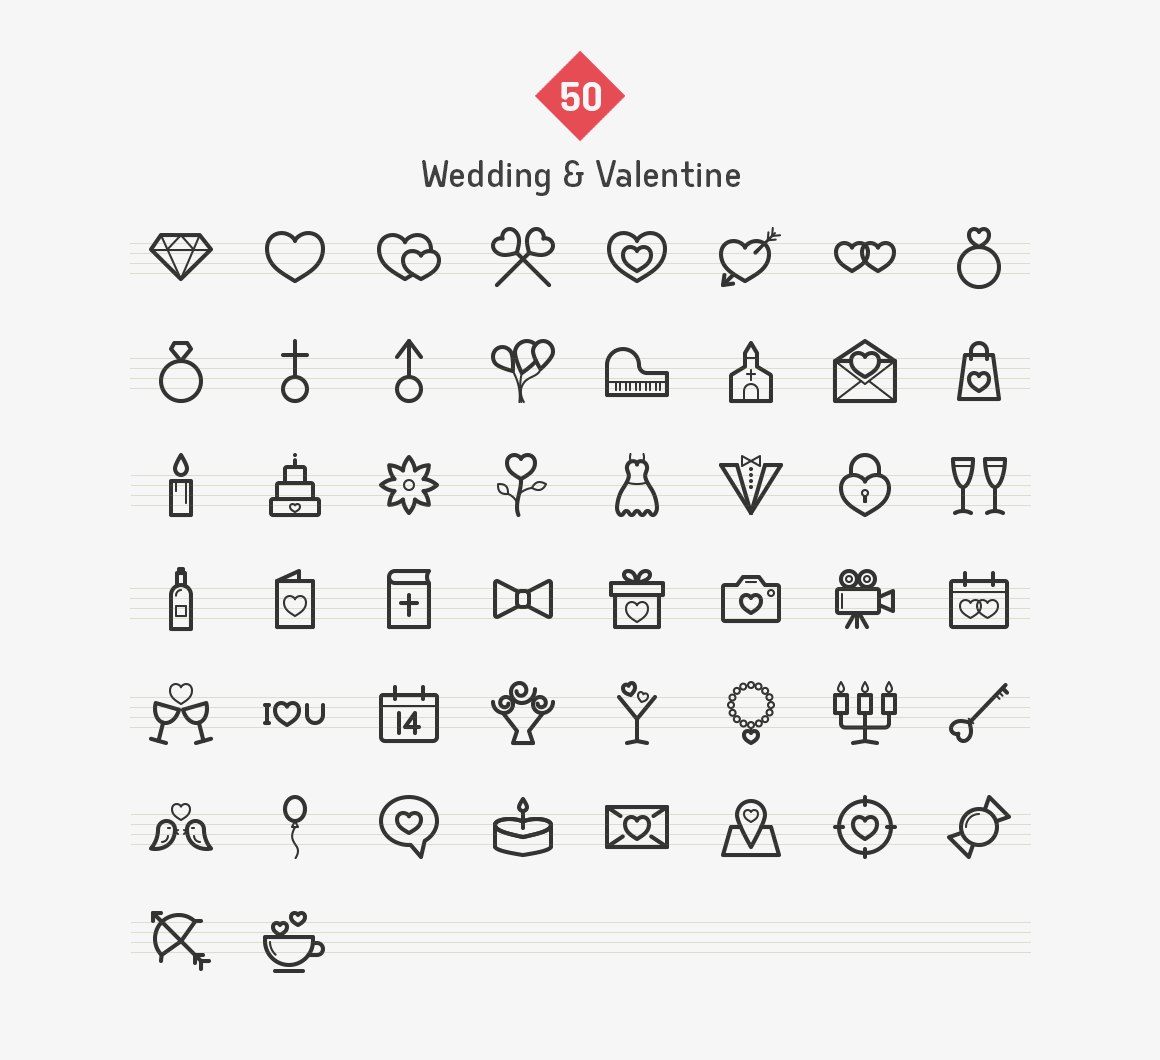 wedding-valentine-line-icons-sharpicons-list